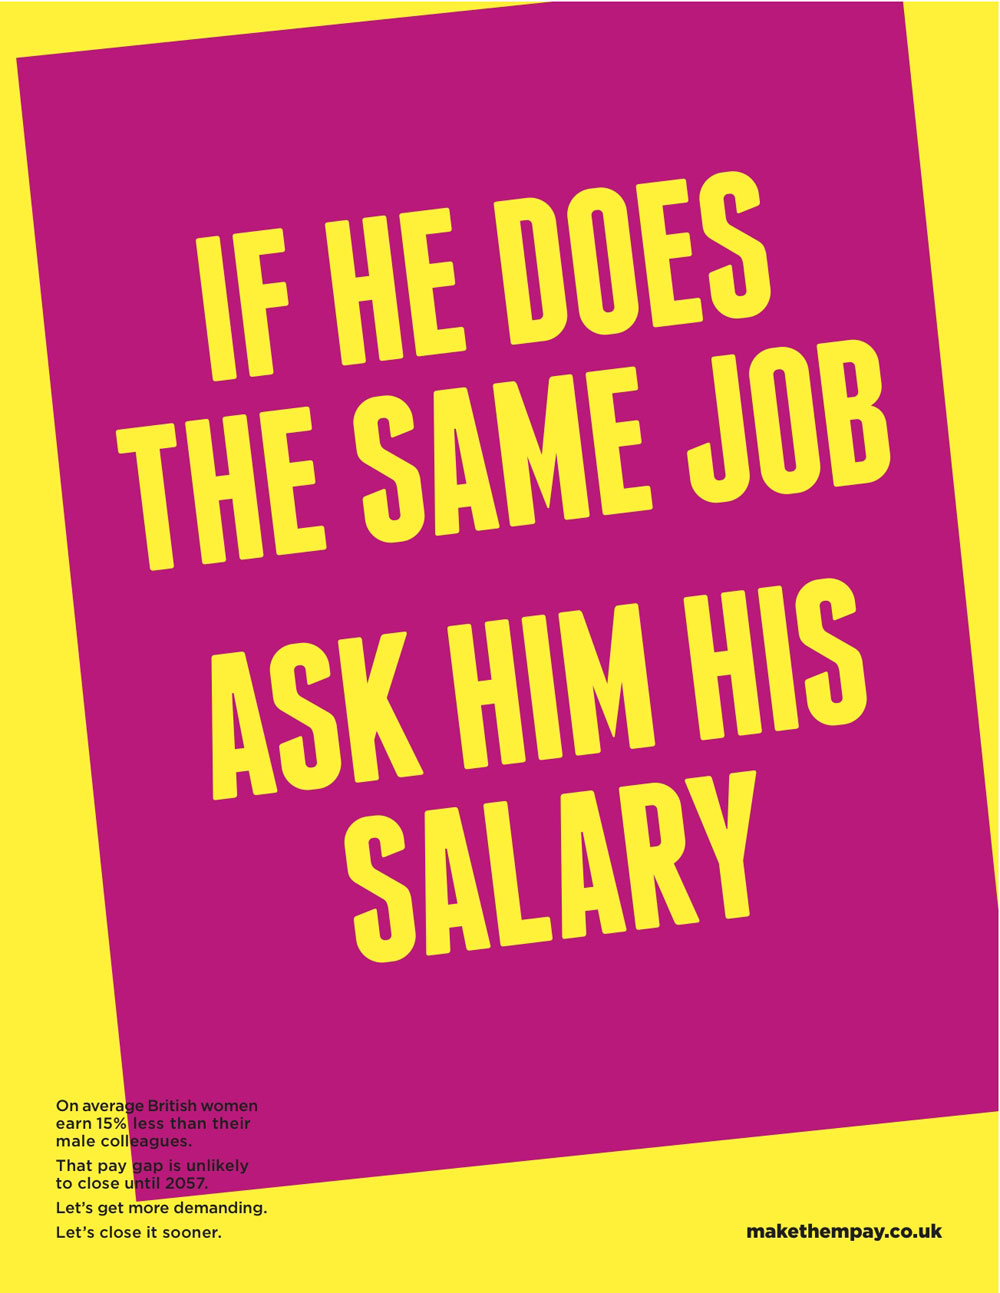 If he does the same job ask him his salary